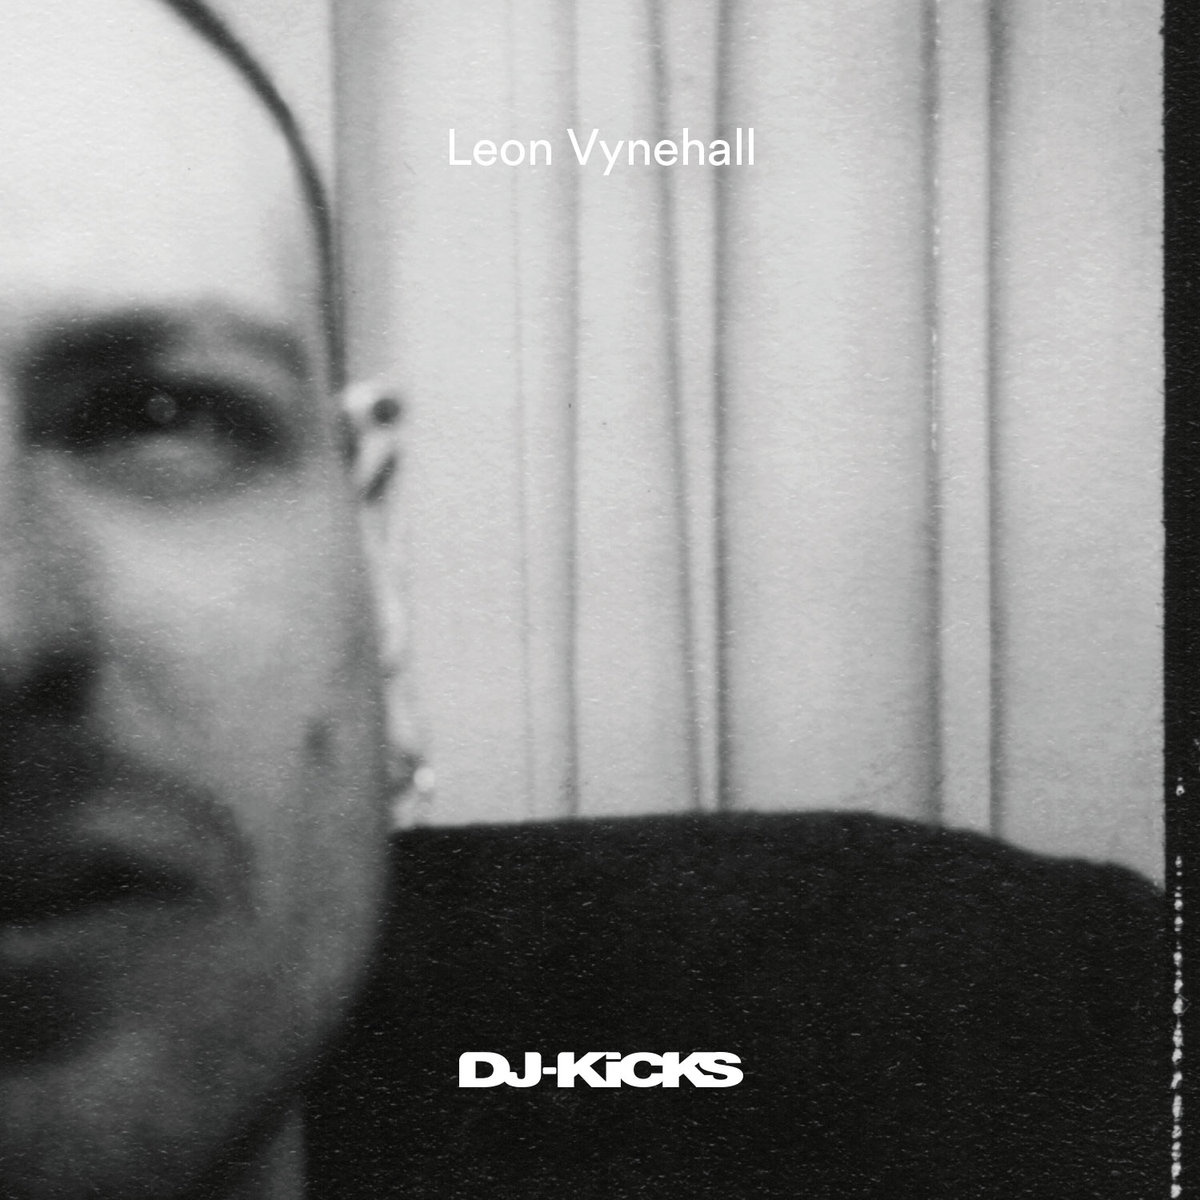 Leon Vynehall s  DJ-Kicks  Entry Proves Fascinating and Frustrating in Equal Measure